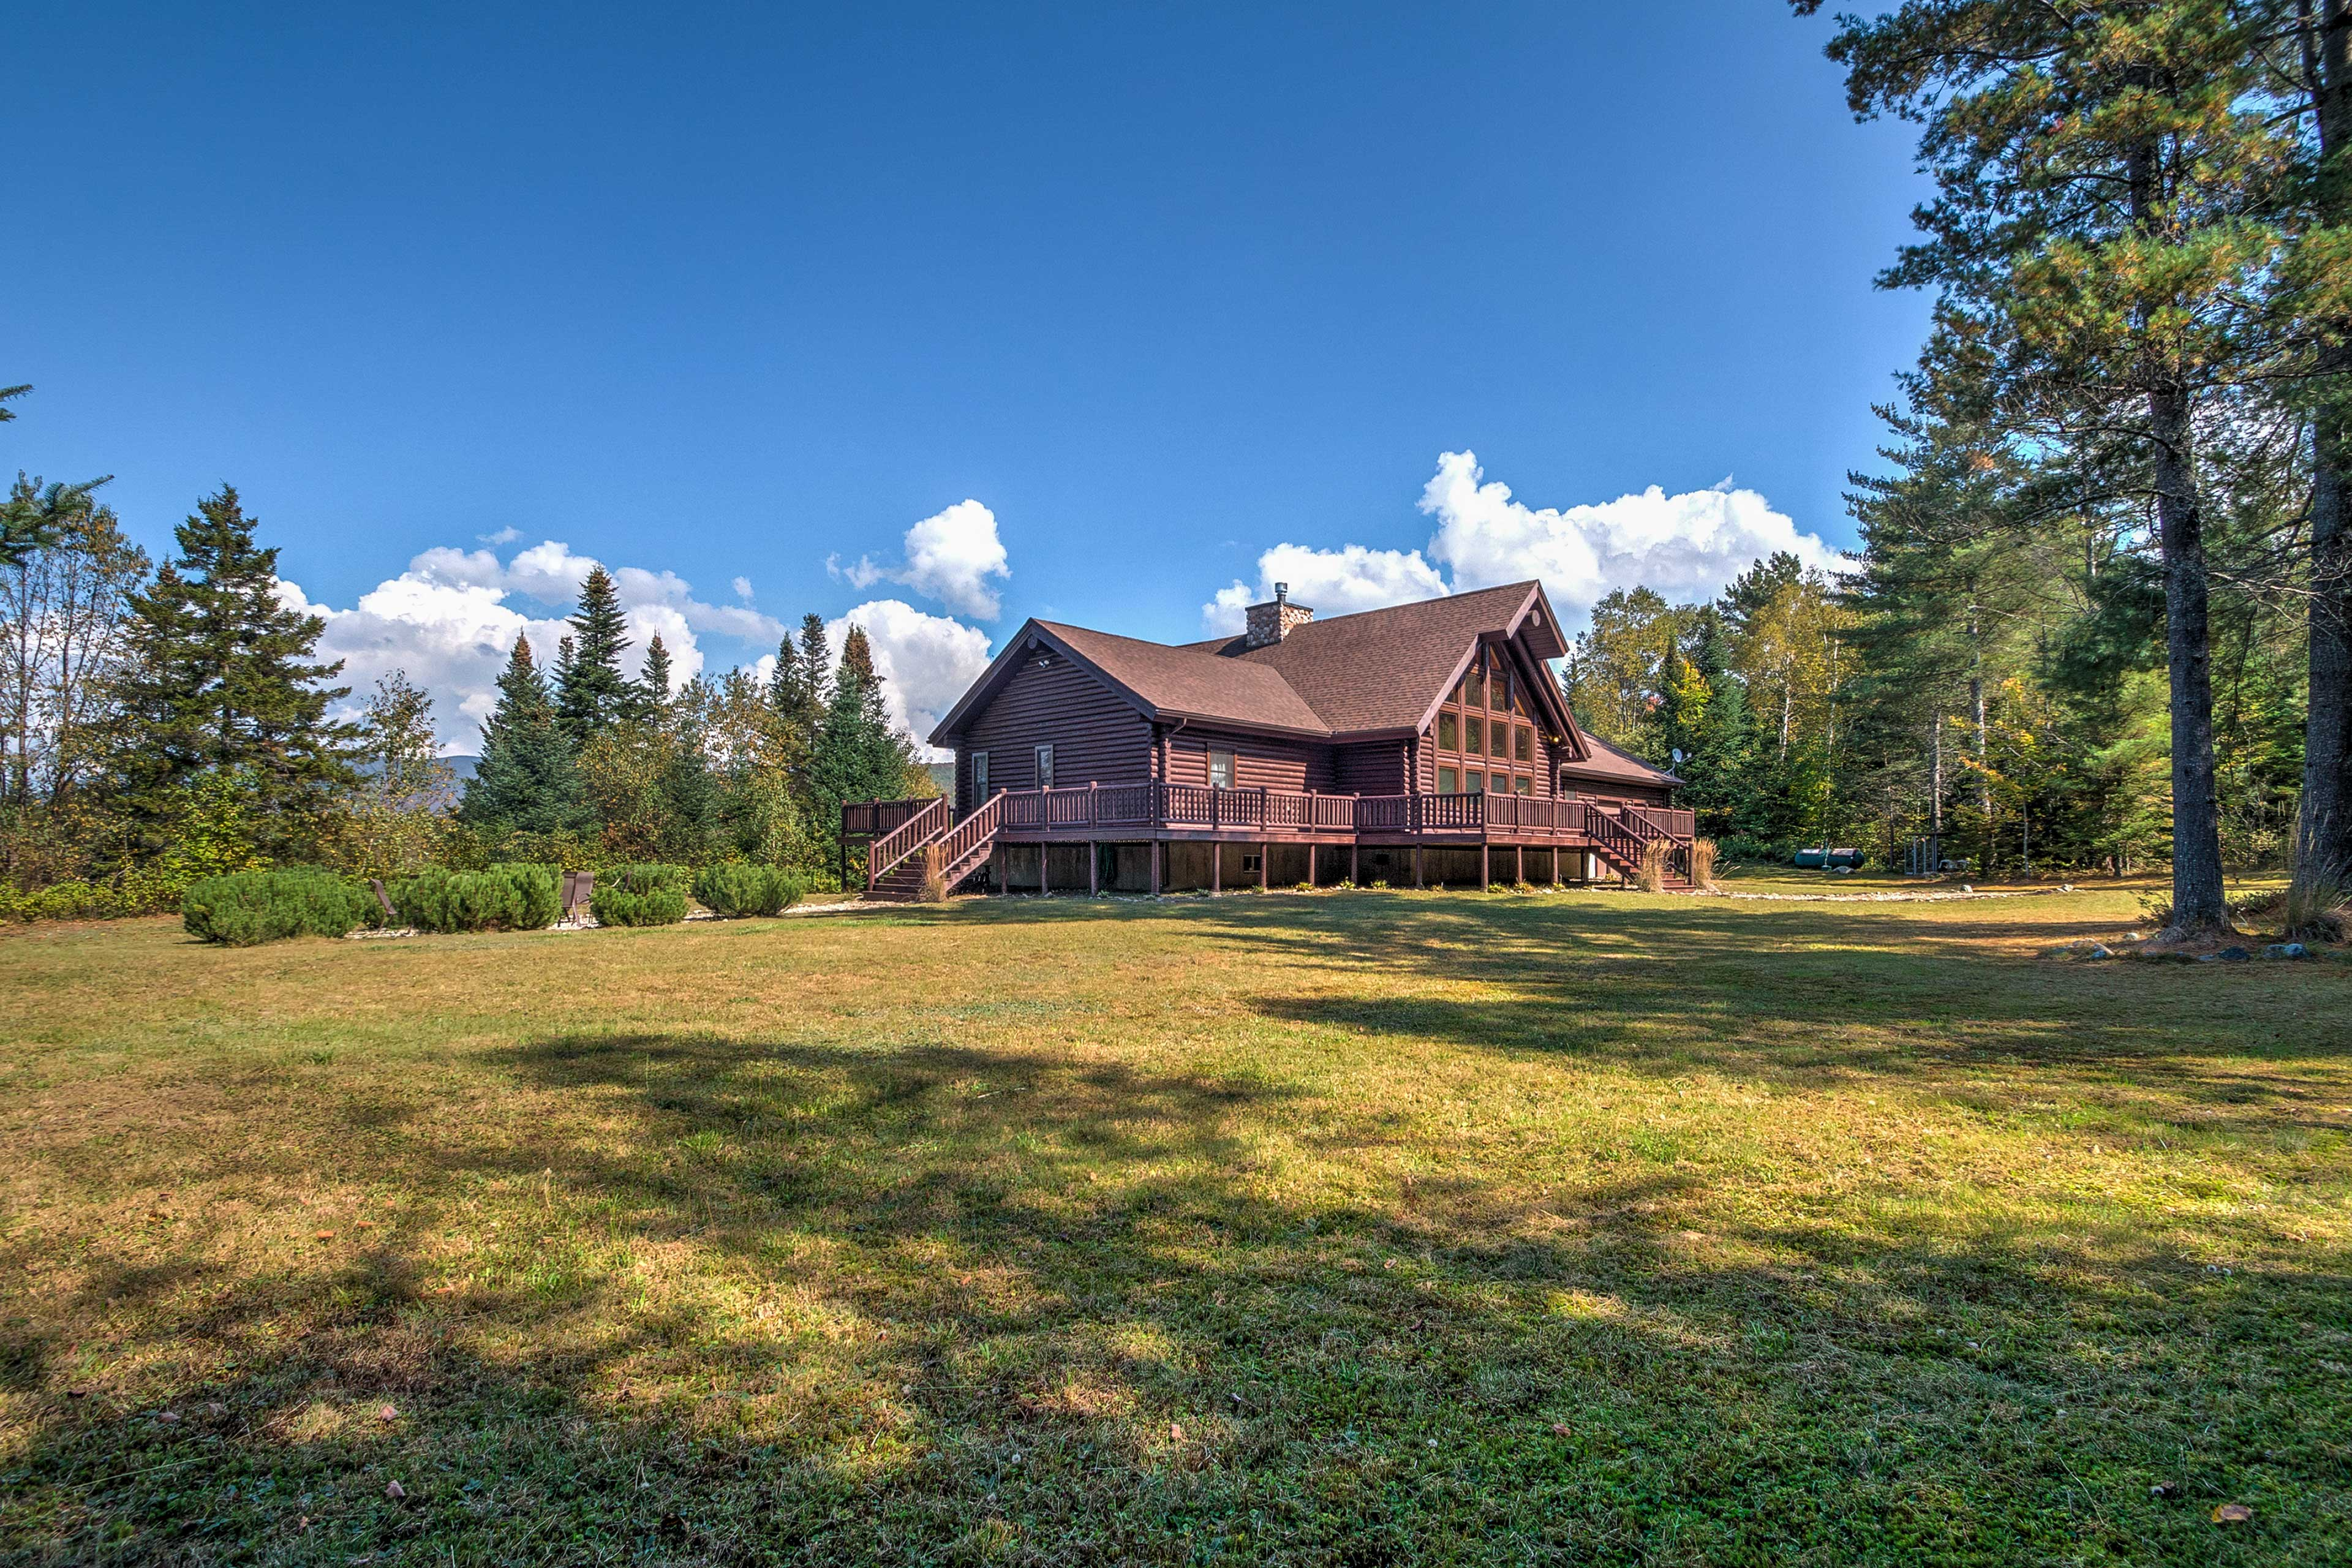 The cabin sits on 5 acres of private property.